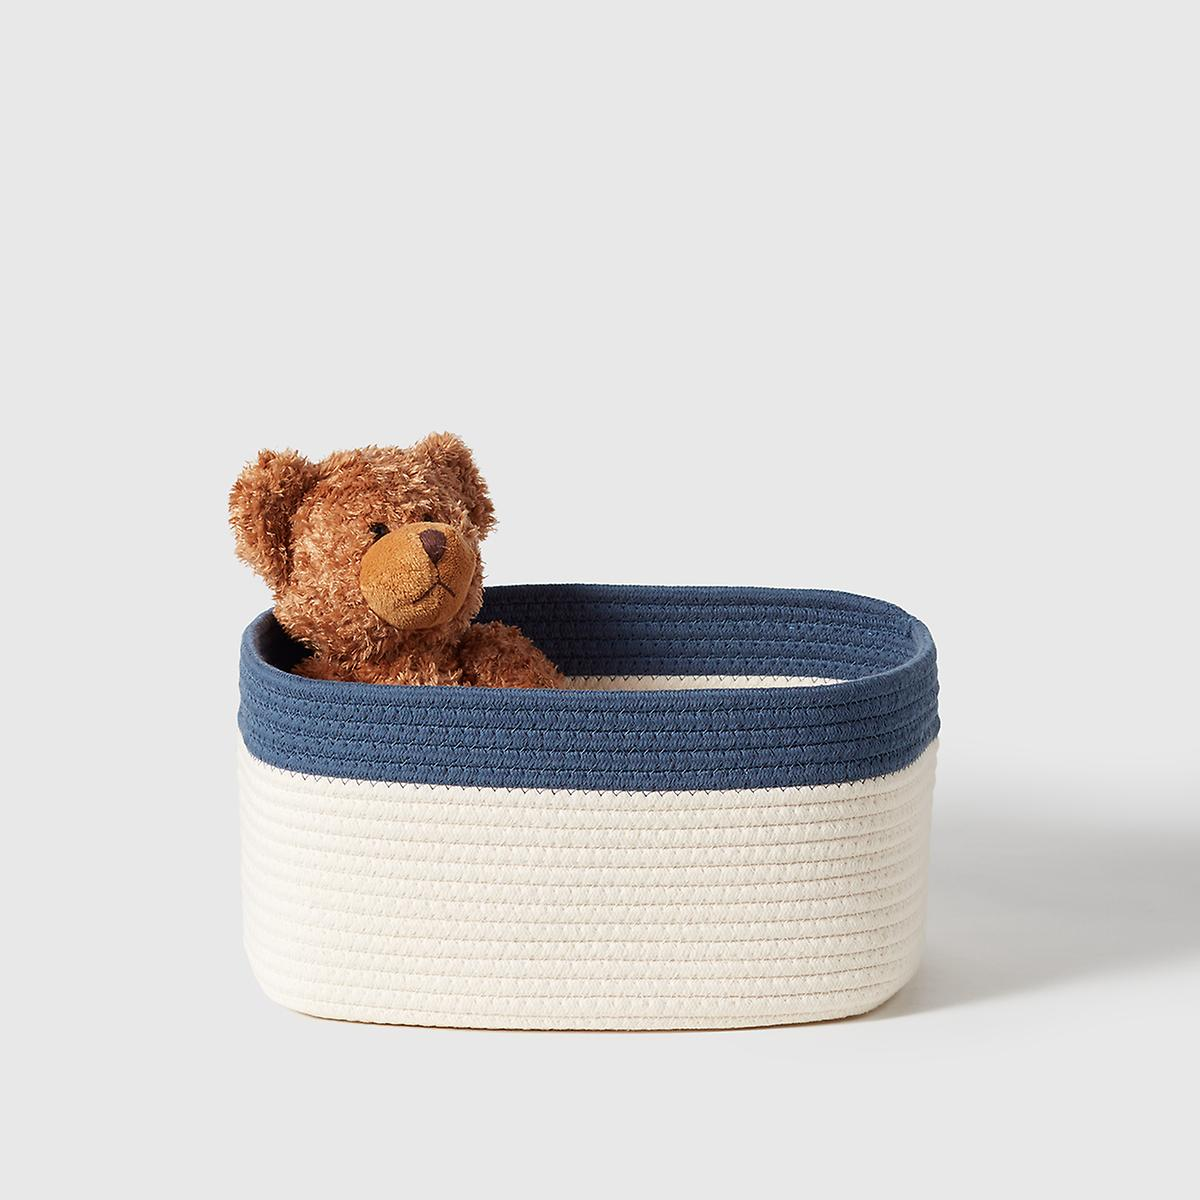 Marie Kondo Indigo Blue Kawaii Cotton Rope Bin